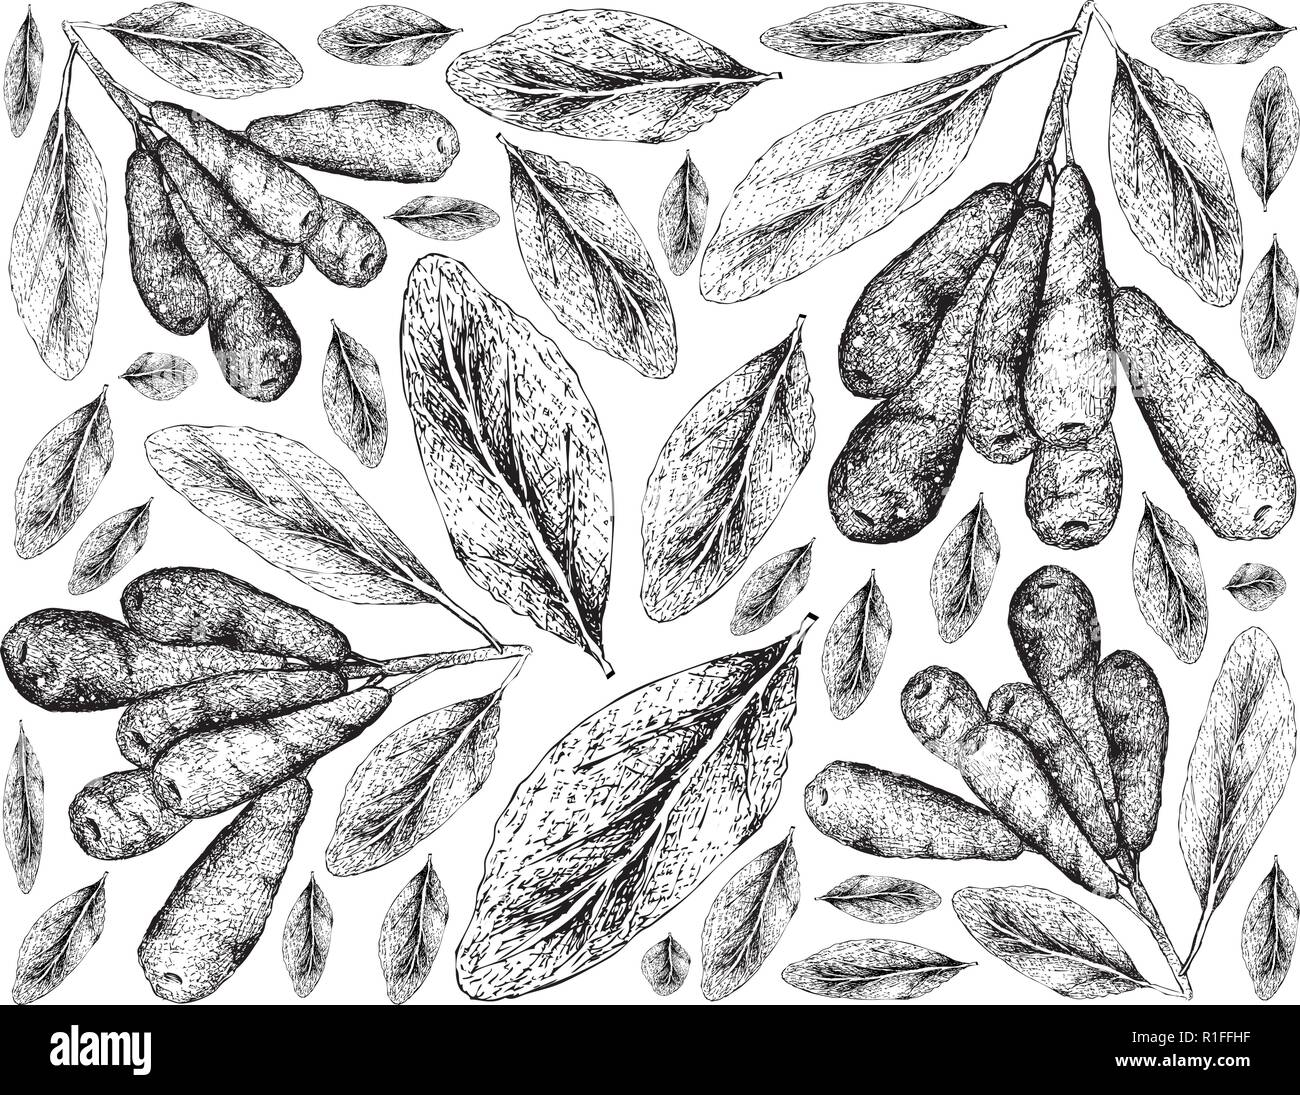 Tropical Fruit, Illustration Wallpaper of Hand Drawn Sketch Honeyberry, Haskap Berry or Lonicera CaeruleaFruits Isolated on White Background. Used for - Stock Vector